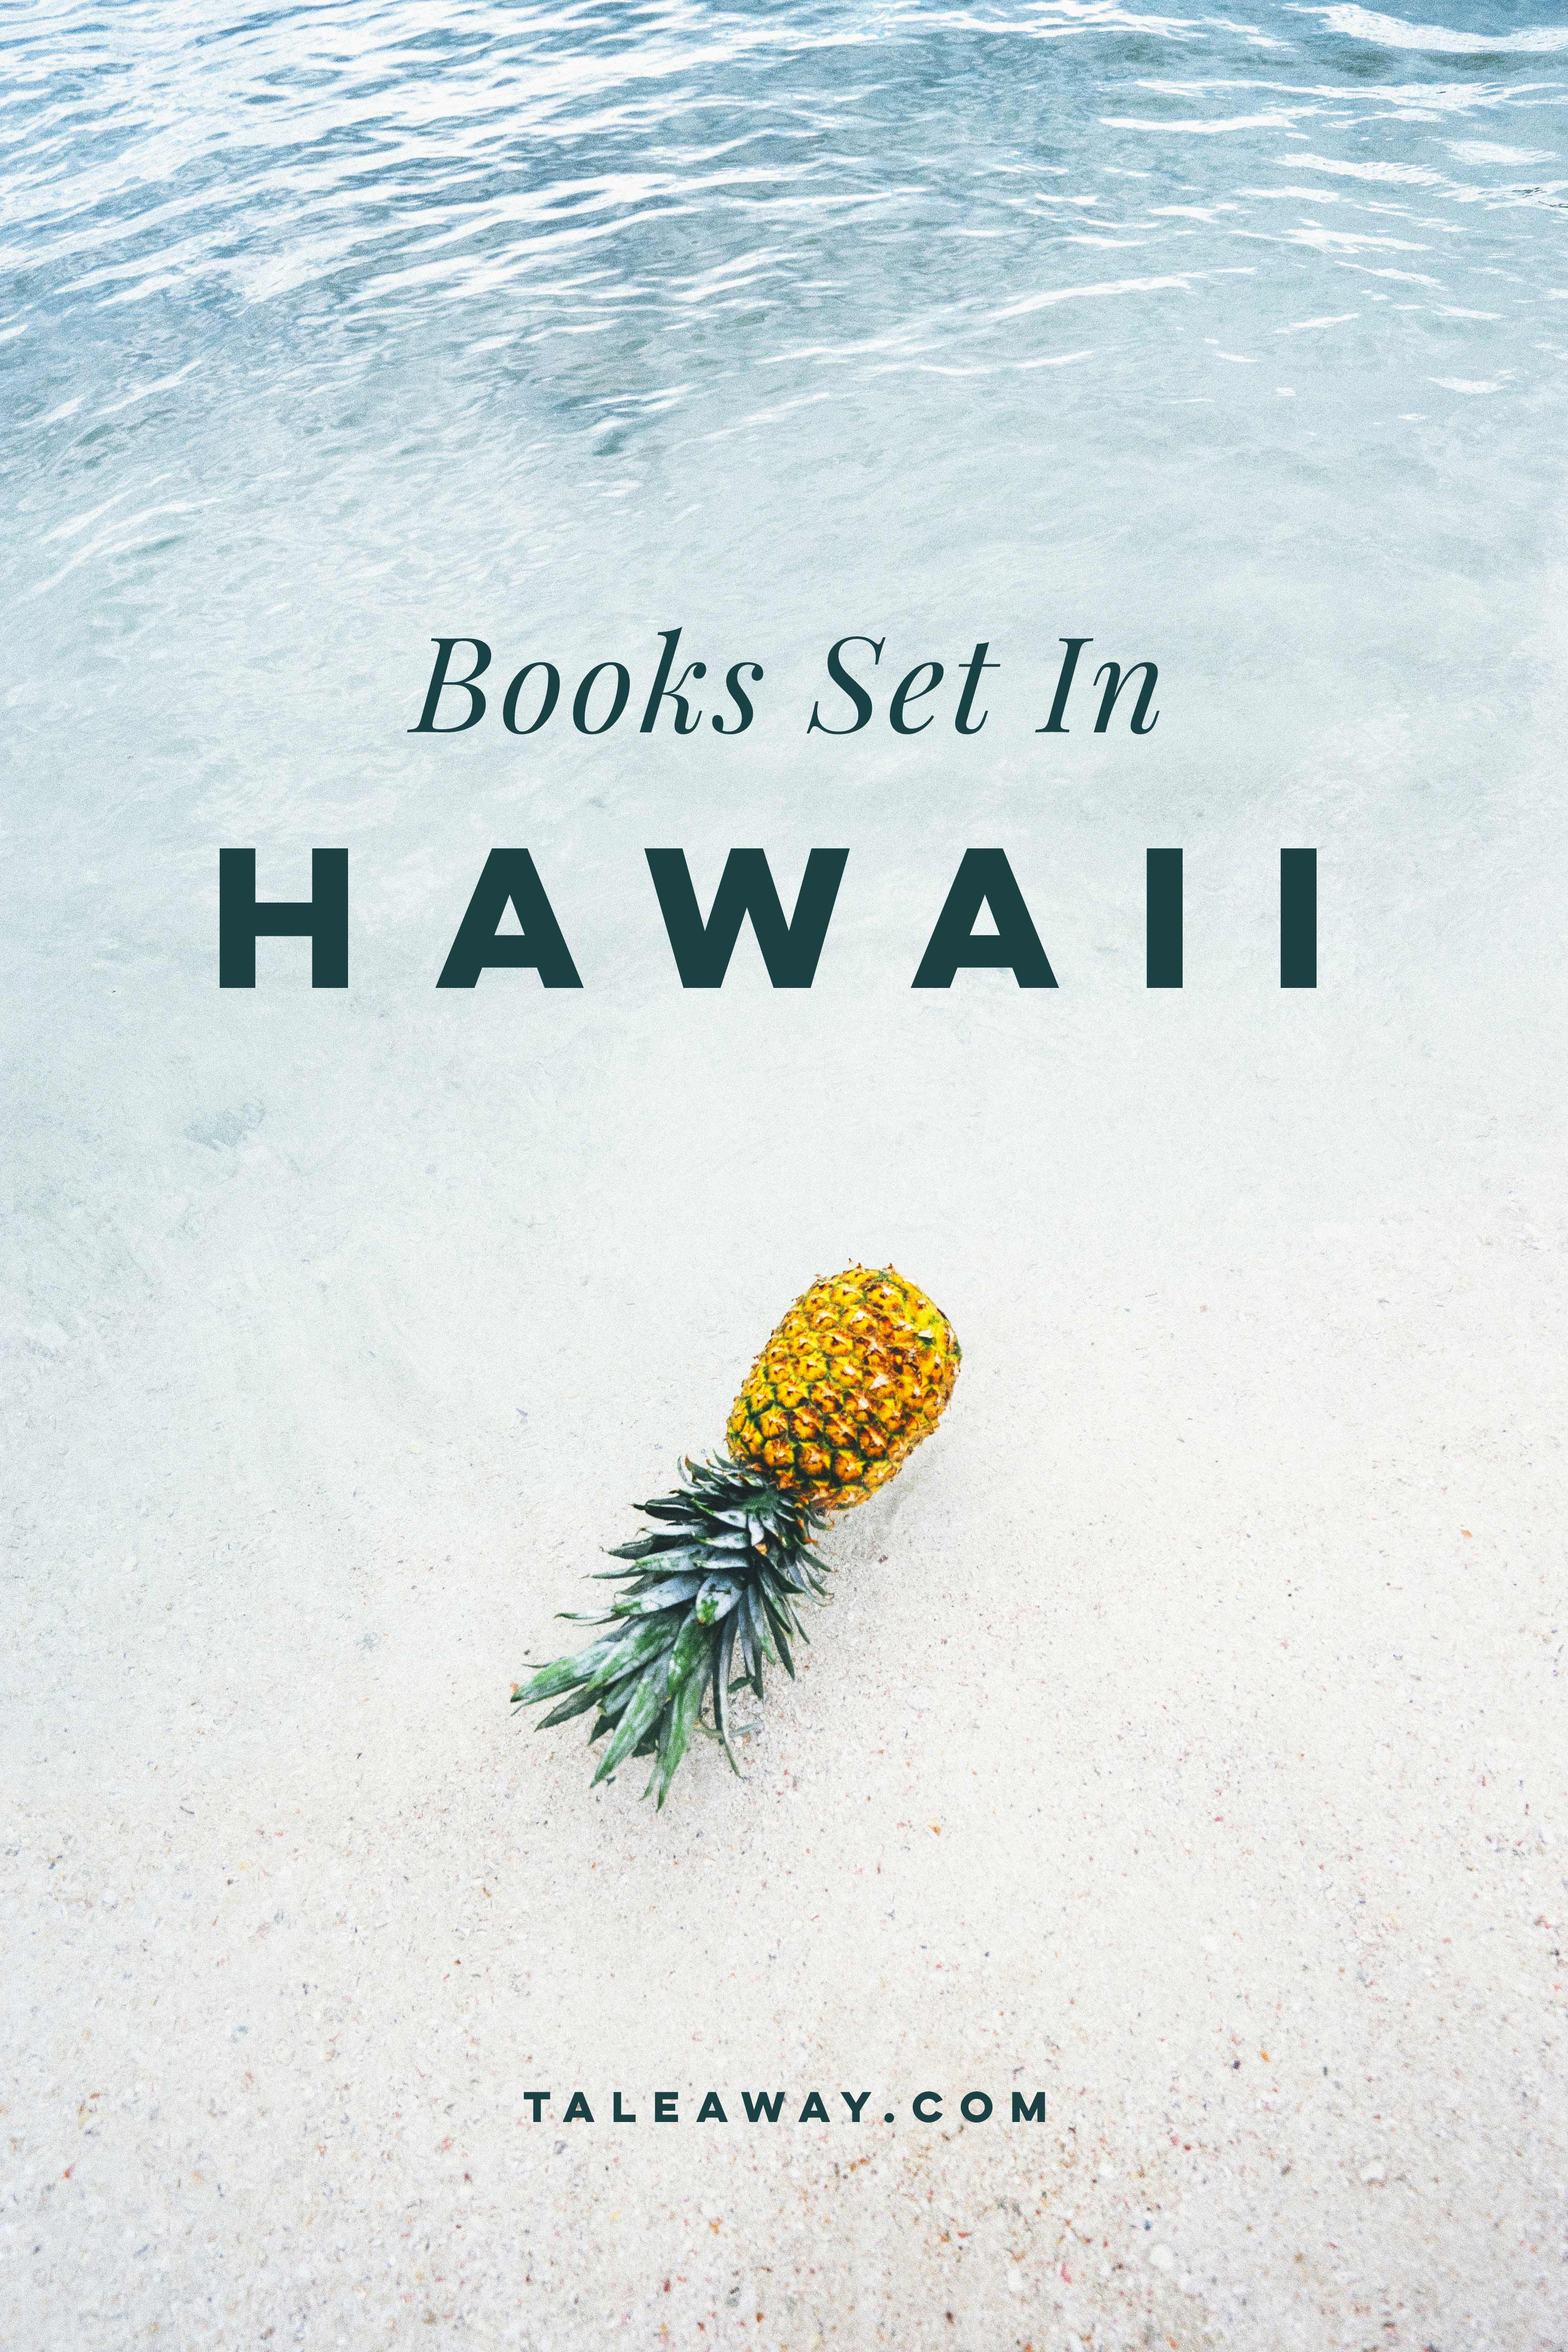 Books Set In Hawaii. For more books visit www.taleway.com to find books from around the world. Ideas for those who like to travel, both in life and in fiction. #books #novels #hawaii #travel #fiction #bookstoread #wanderlust